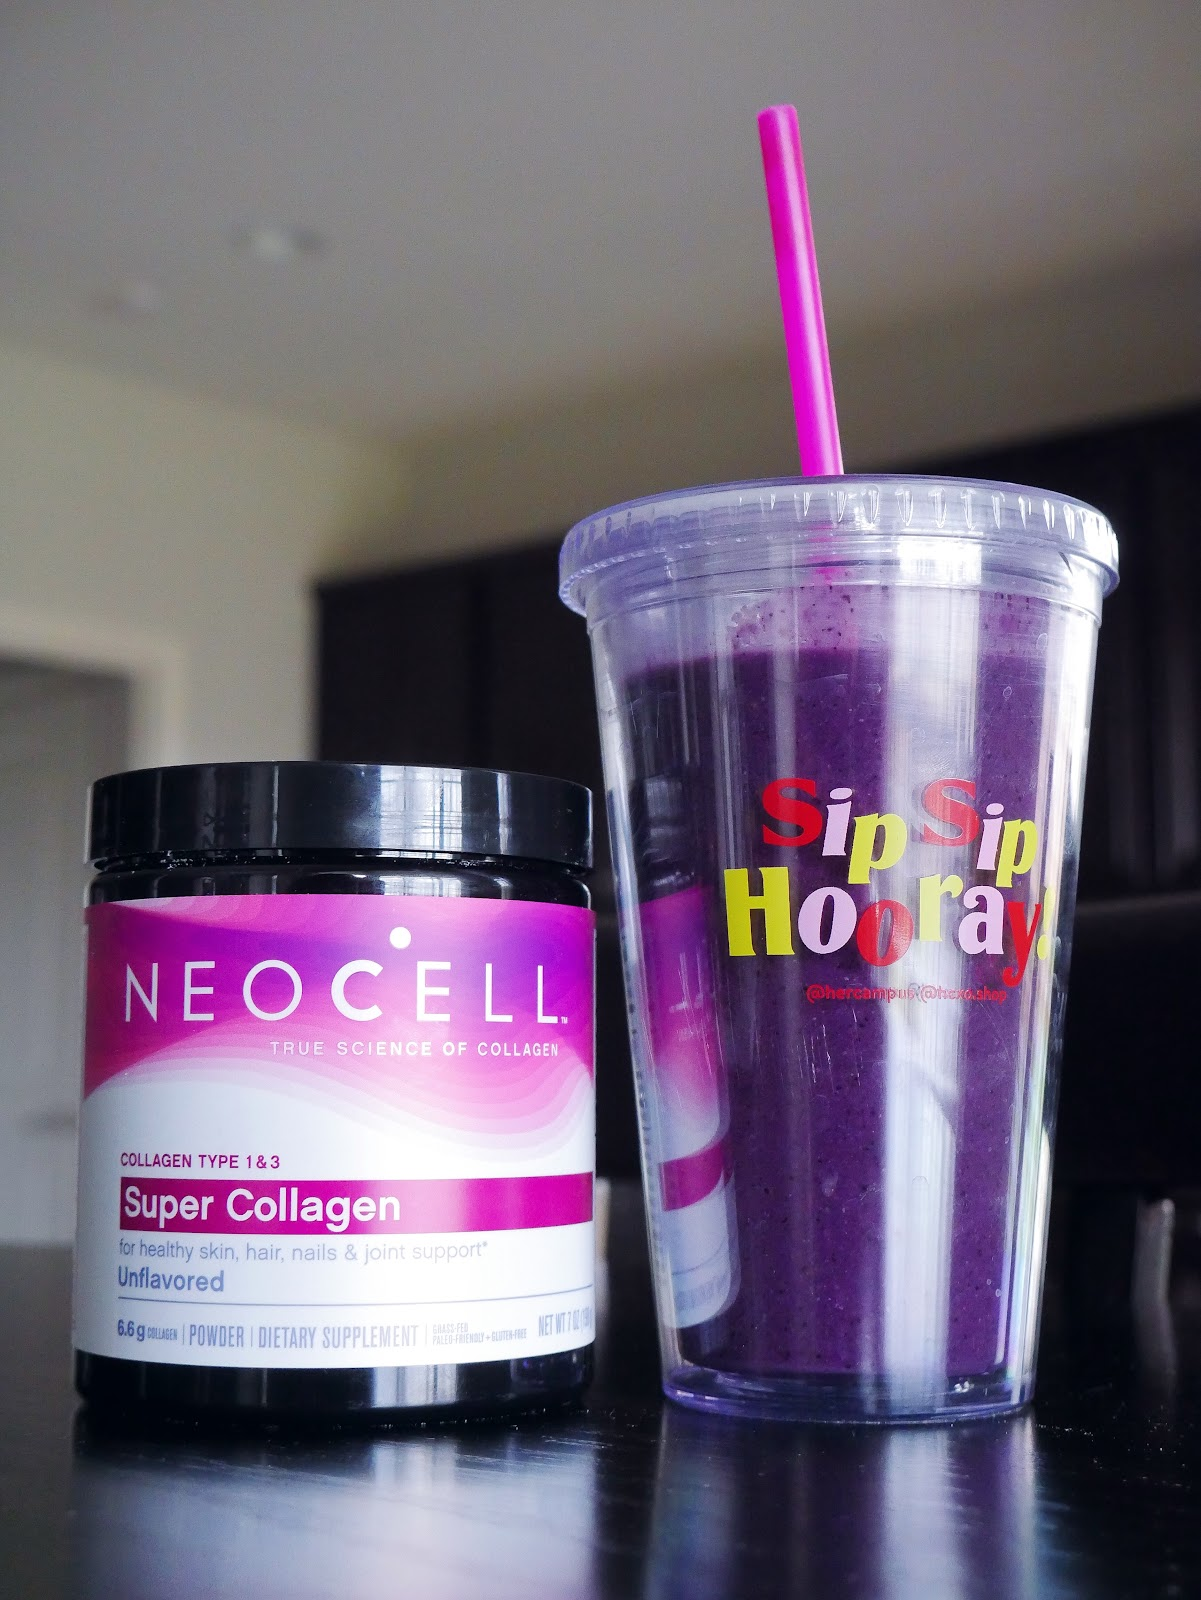 Neocell Super Collagen - radiate your inner beauty out